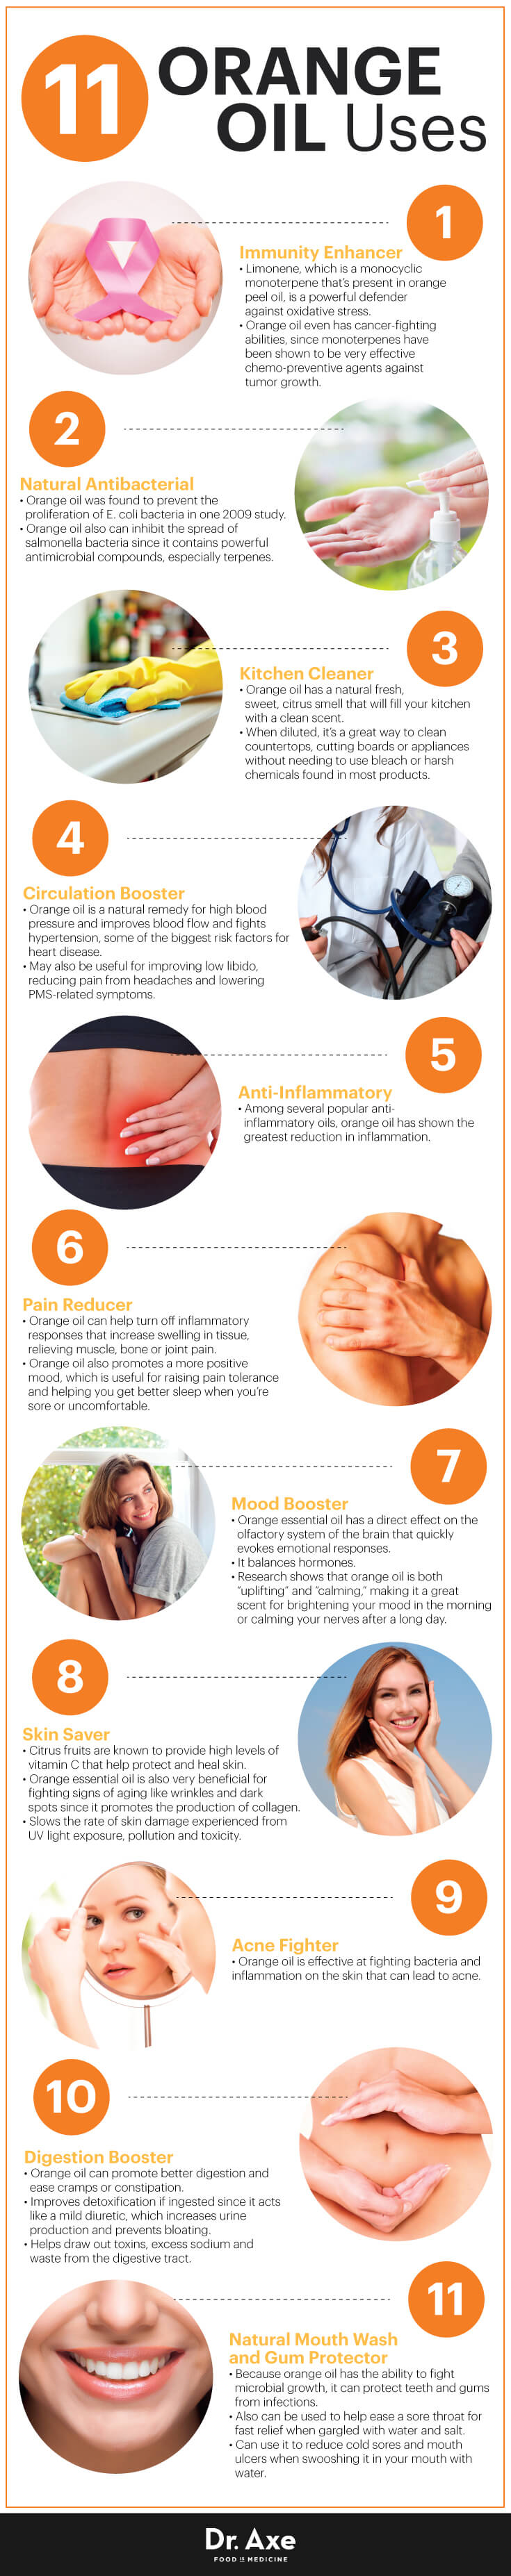 11 Unexpected Ways To Improve Your Health With Orange Essential Oil Infographic